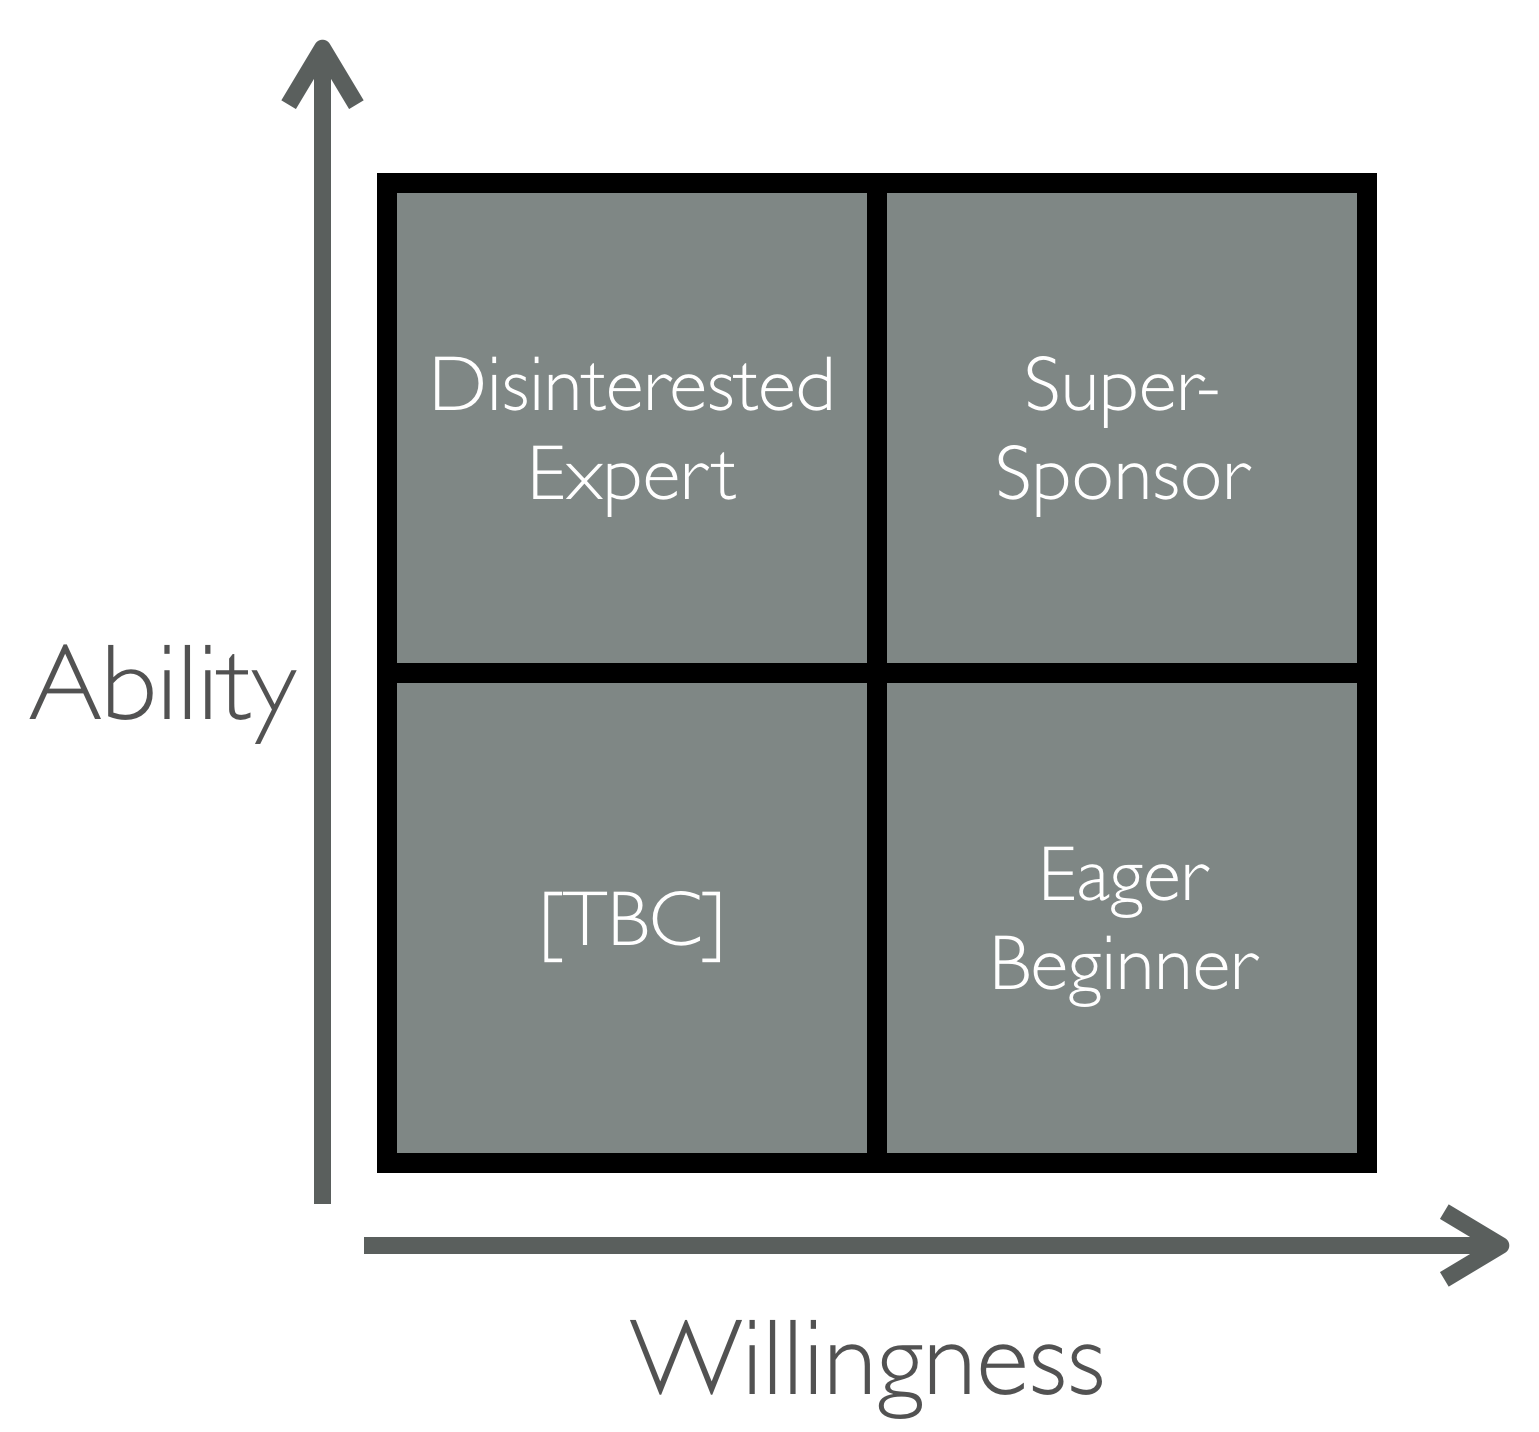 ability_willingness_matrix